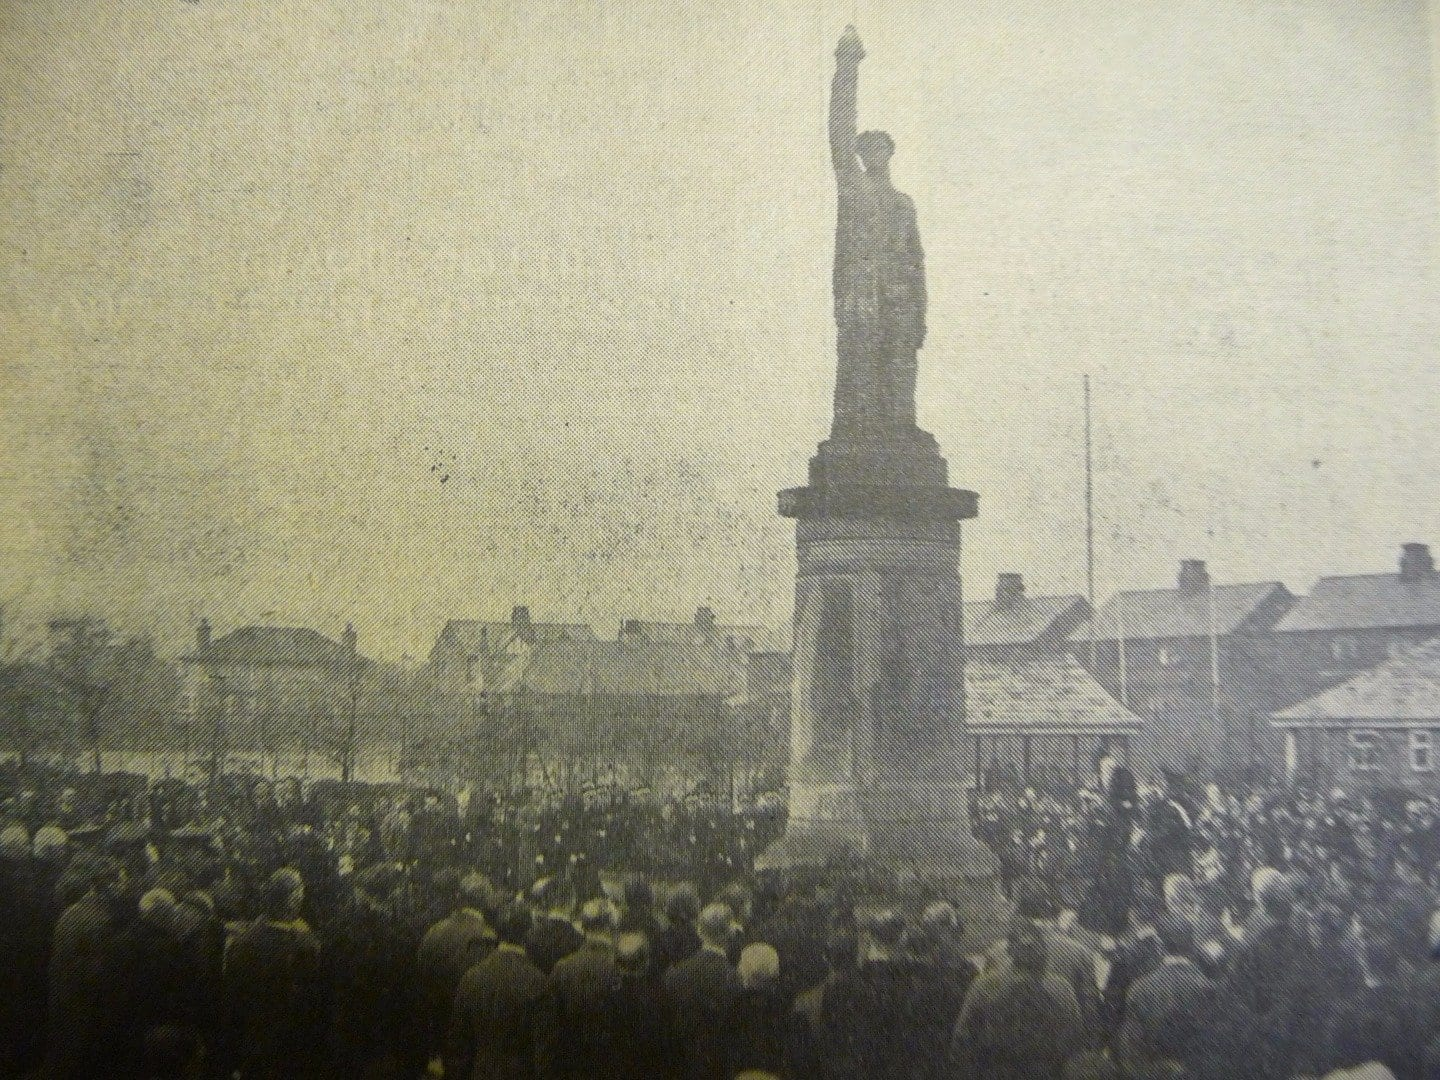 Unveiling of Cenotaph in 1925 from Fleetwood Chronicle